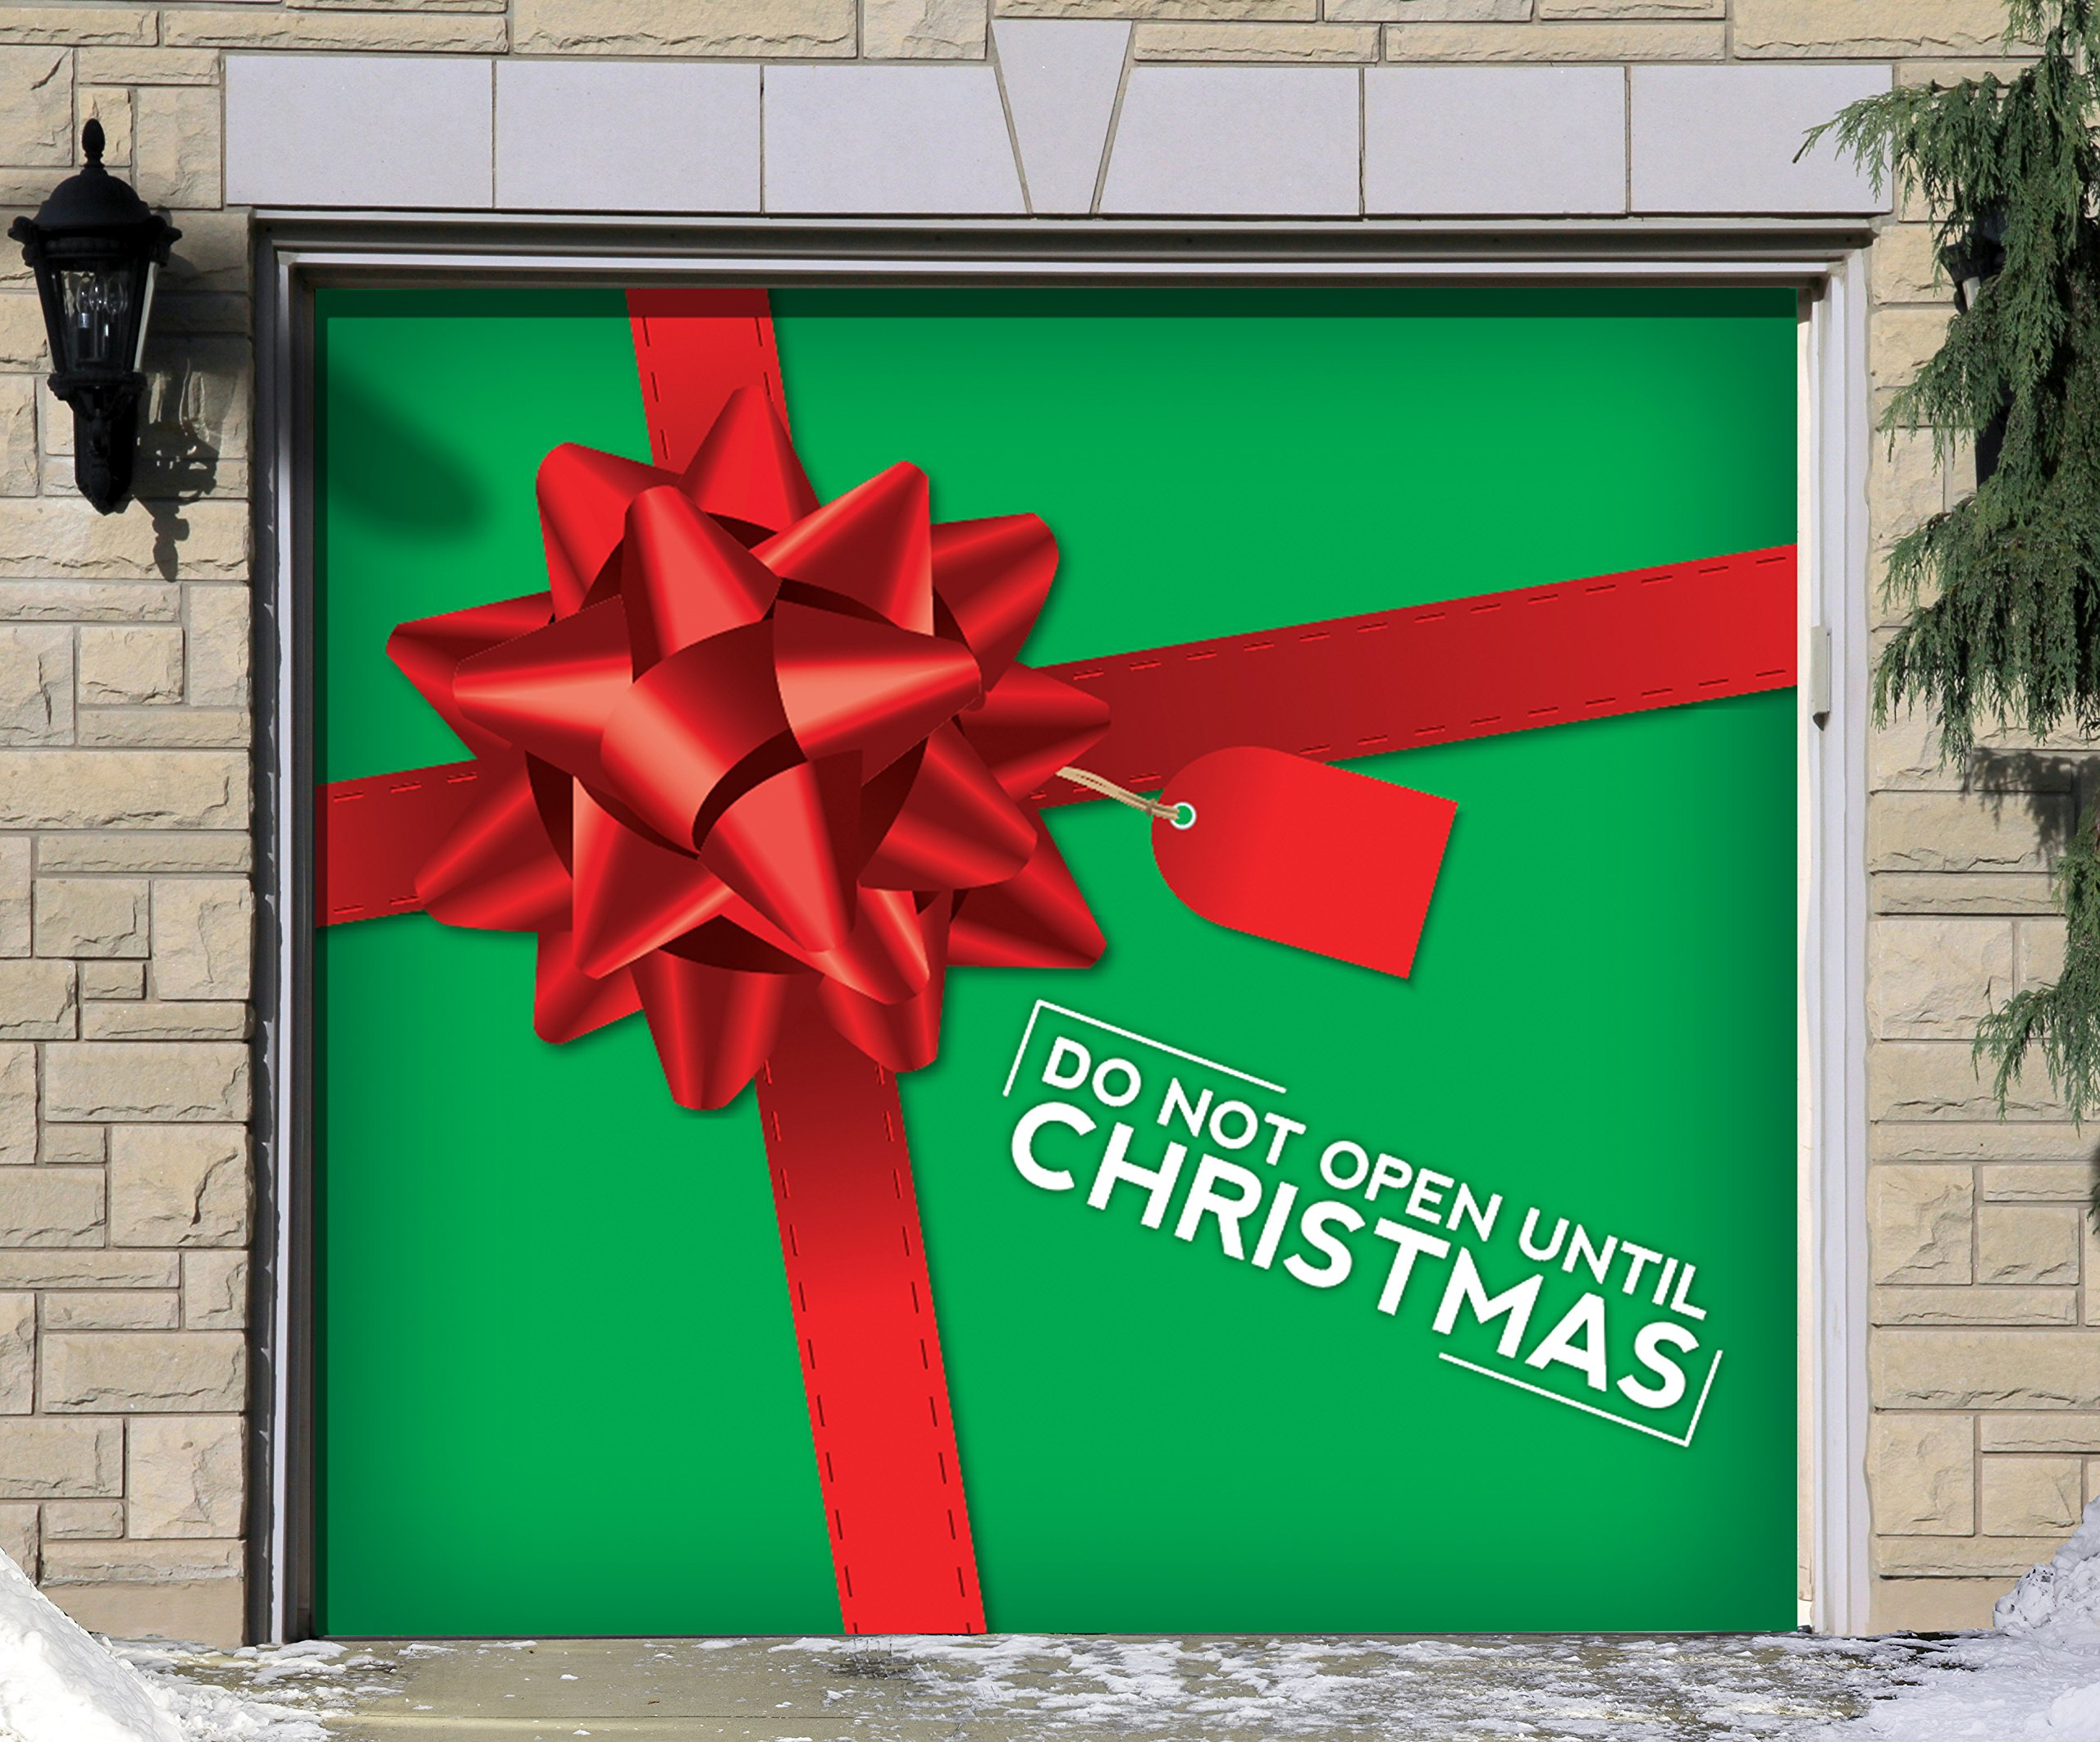 Victory Corps Outdoor Christmas Holiday Garage Door Banner Cover Mural Décoration - Don't Open Until Outdoor Christmas Holiday Garage Door Banner Décor Sign 7'x8'